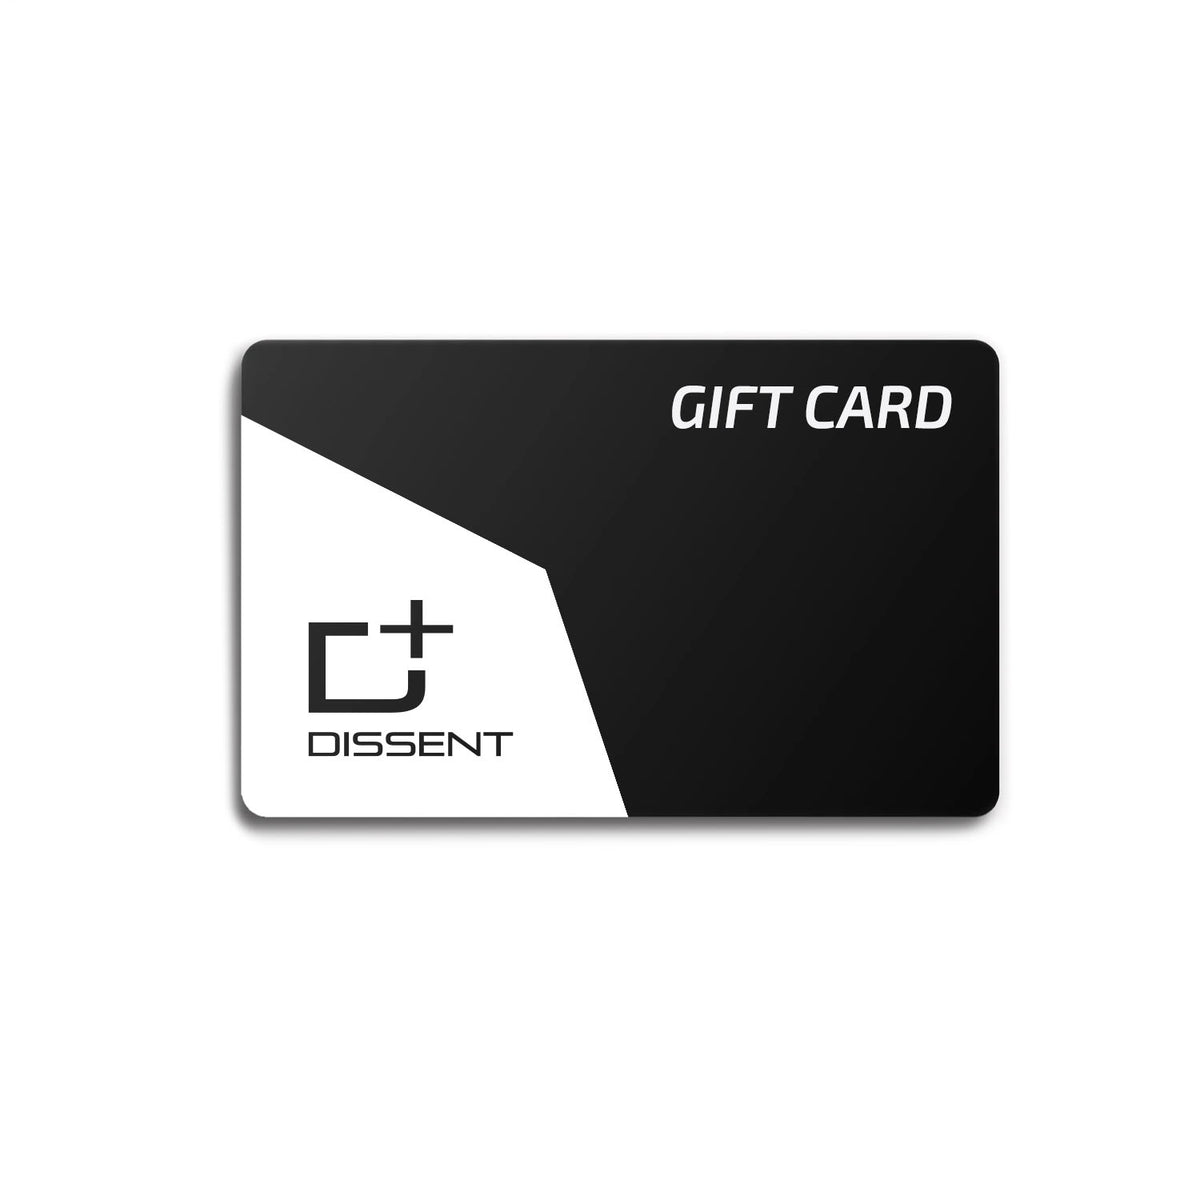 Dissent Gift Card